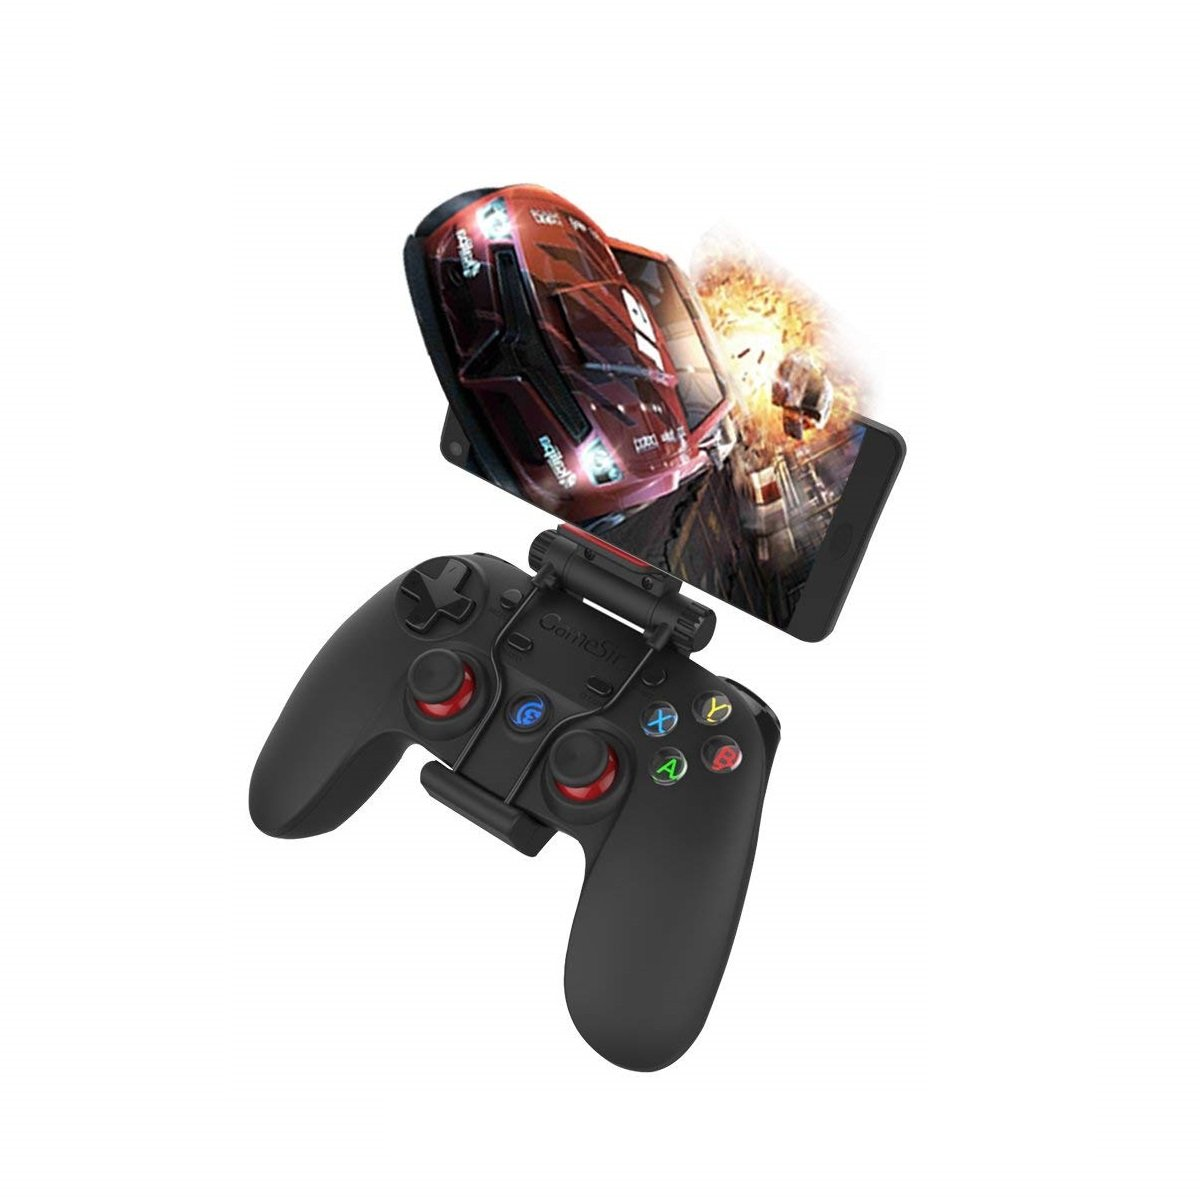 GameSir G3s Bluetooth Wireless Controller for Android Smartphone ...